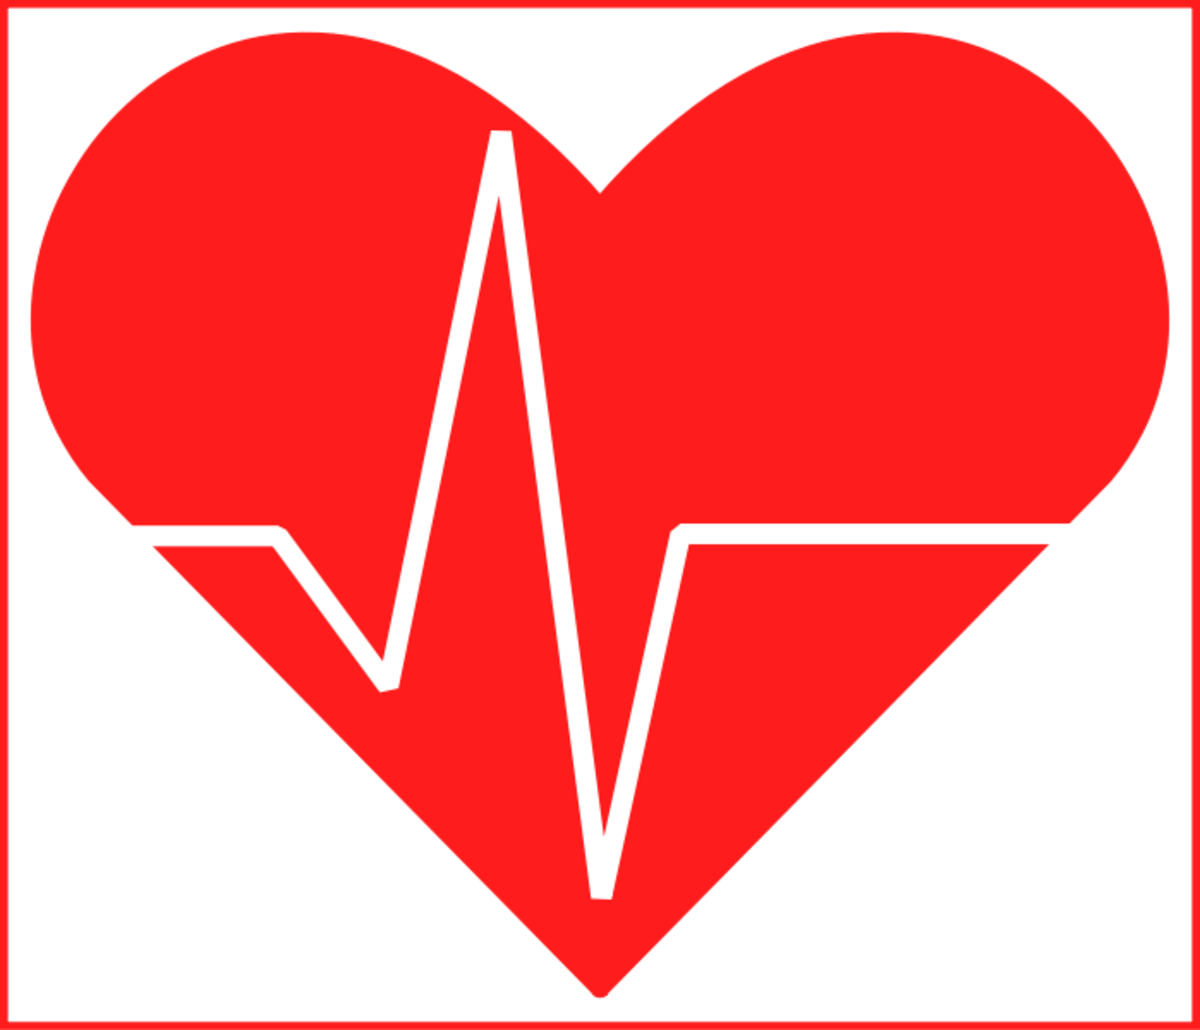 My Cardiac Health Scare - A Silent Heart Attack?